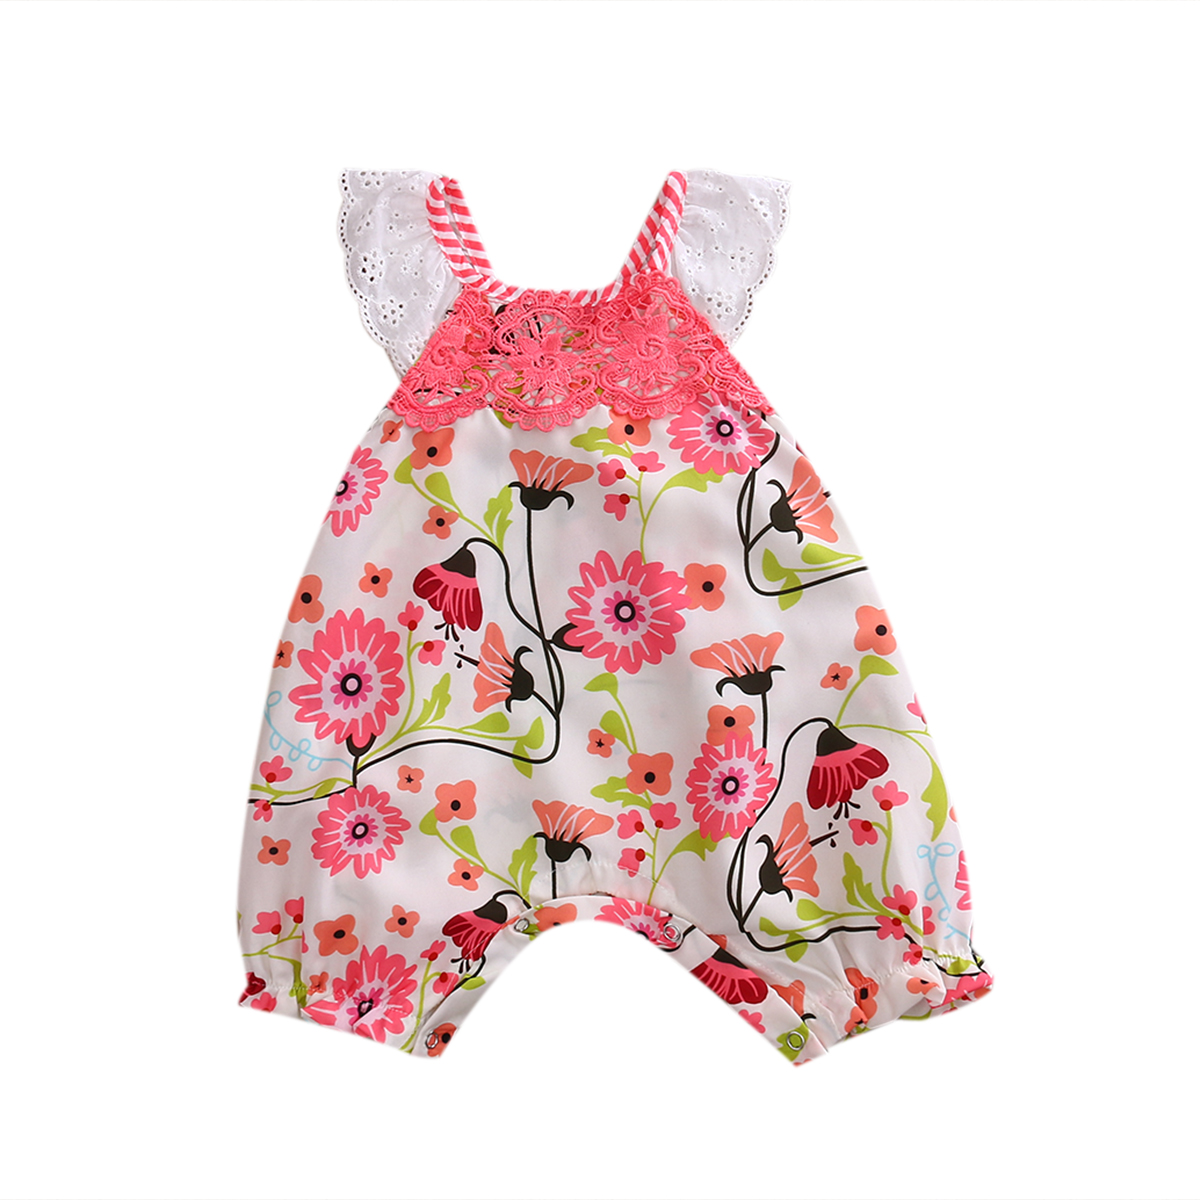 Summer Flying Lace Sleeve Floral Romper Bow Backless Jumpsuit Toddler Clothes Outfit Sunsuit Set For Sweet Baby Girl Newborn